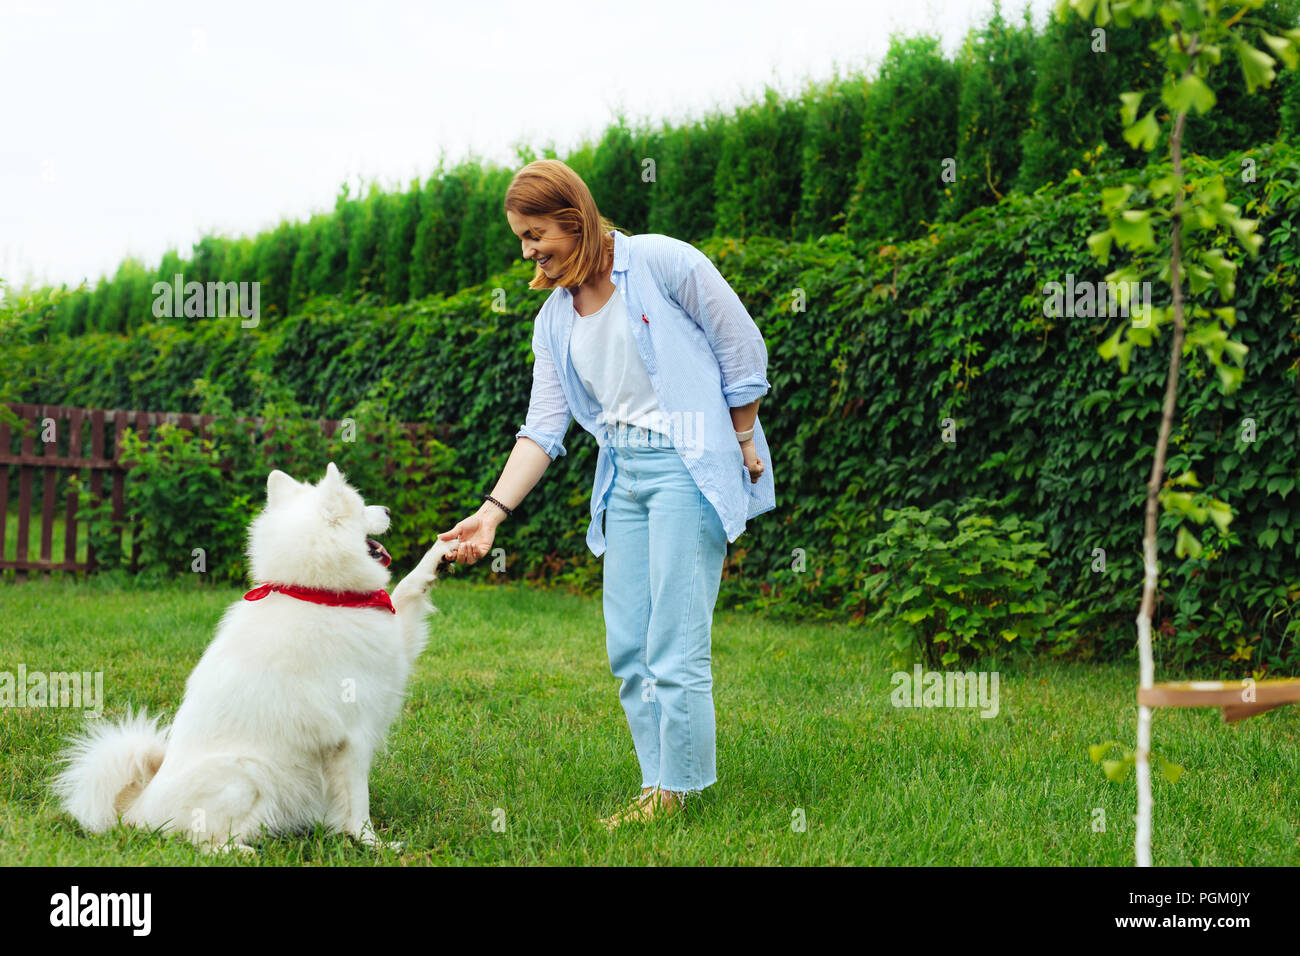 Stylish blonde-haired woman playing with dog in the garden - Stock Image